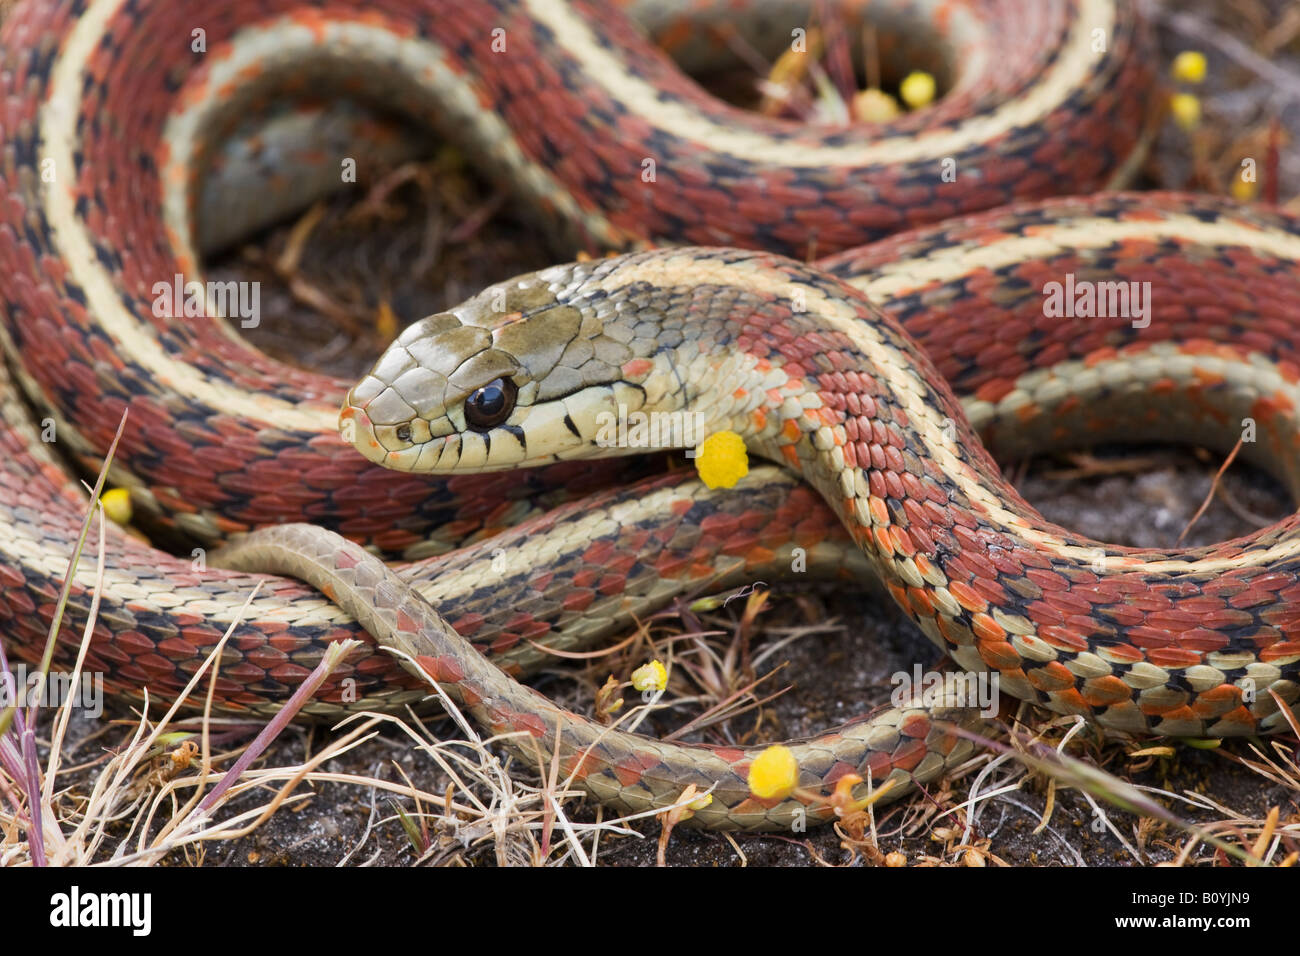 Couleuvre rayée Thamnophis elegans côte terrestris California United States Photo Stock